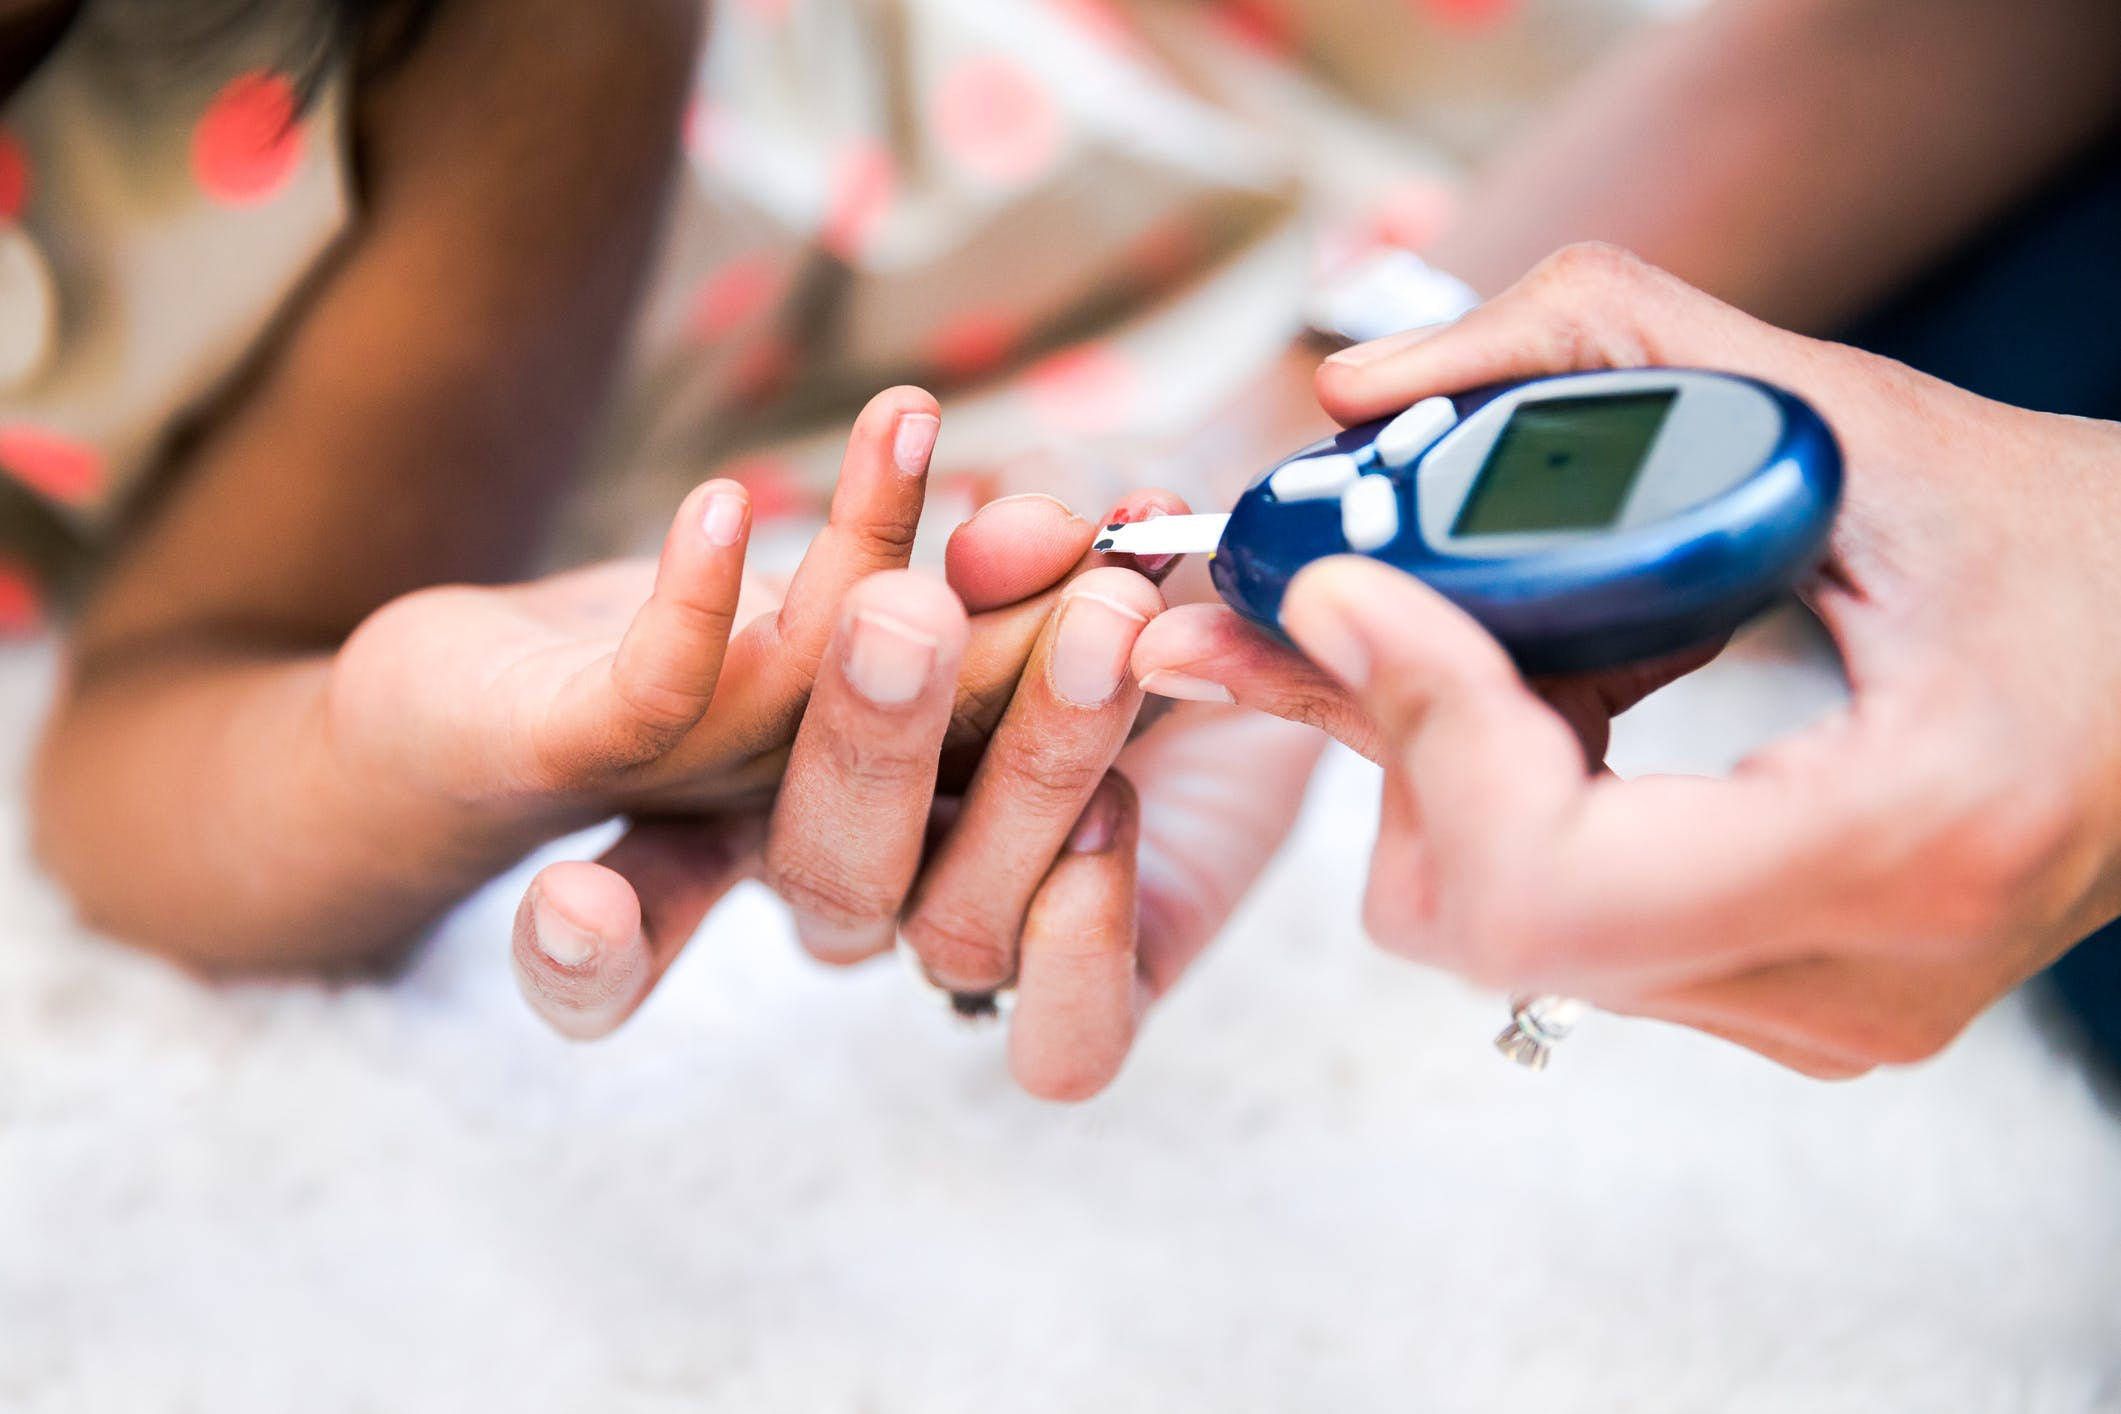 Type 1 Diabetes: New Study Shows More Stable Blood Sugar on Low Carb